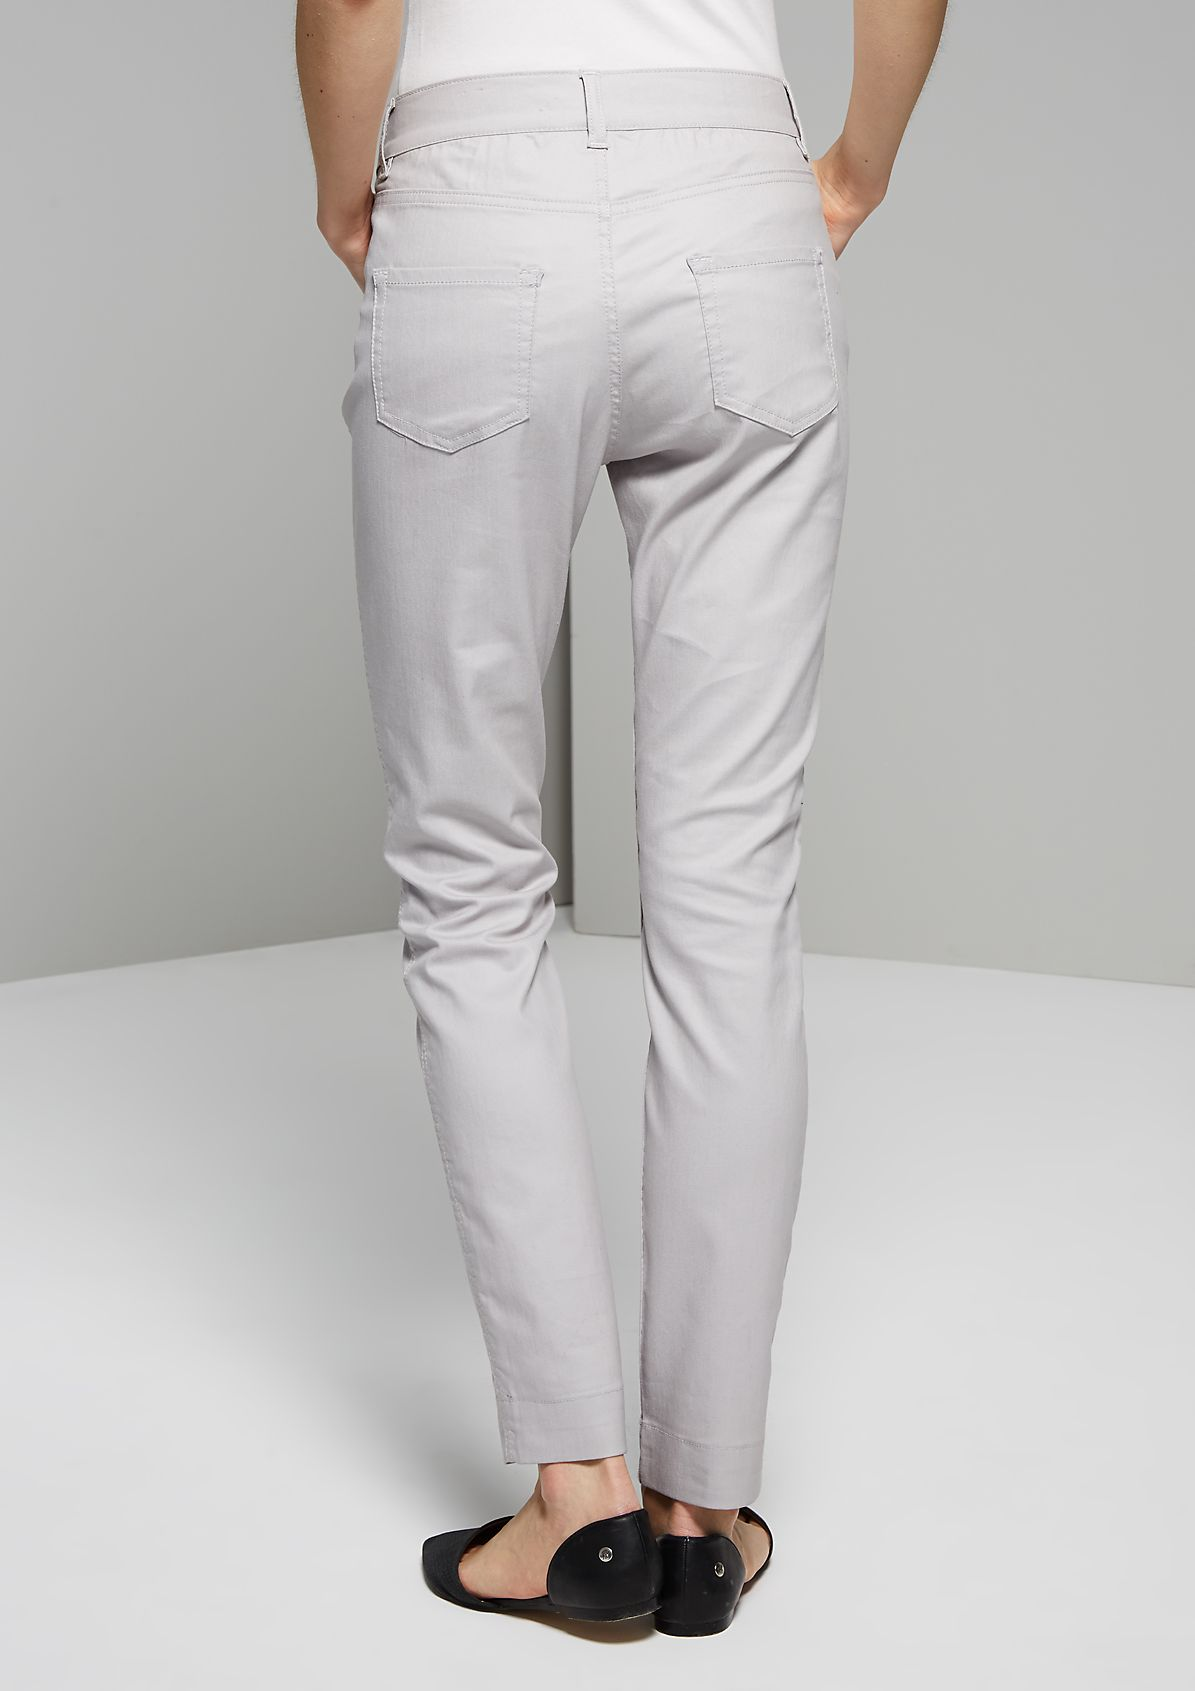 Feminine denim trousers with charming design features from s.Oliver